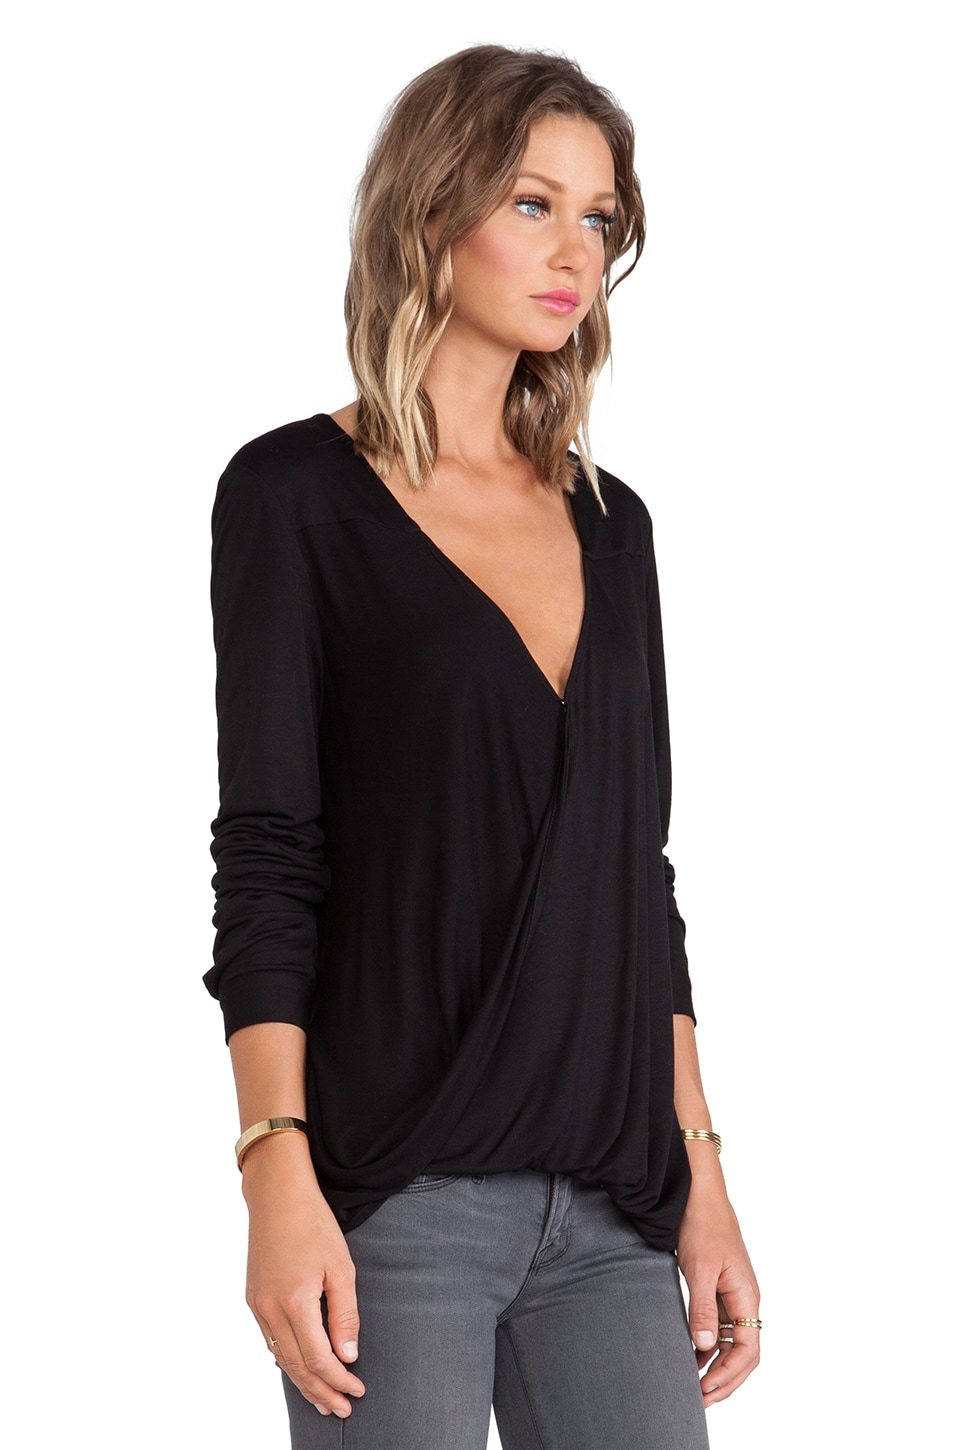 DEREK LAM 10 CROSBY Long Sleeve Wrap Front Blouse in Black | REVOLVE